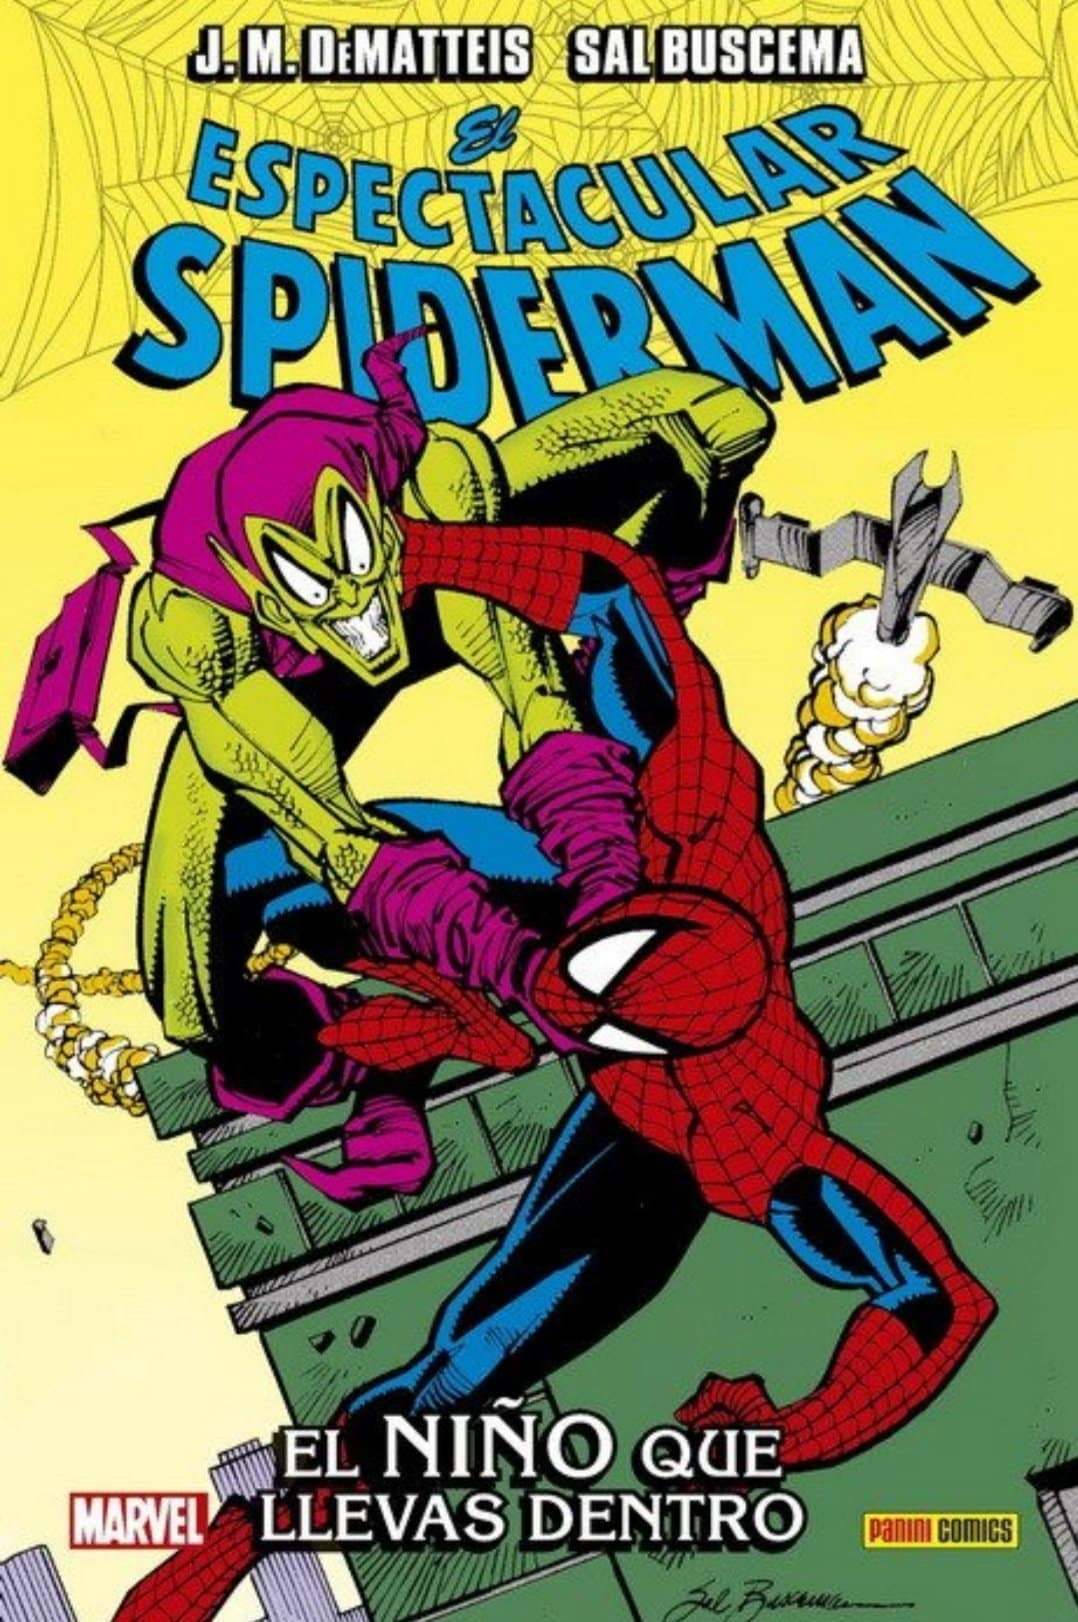 The Spectacular Spider-Man #178